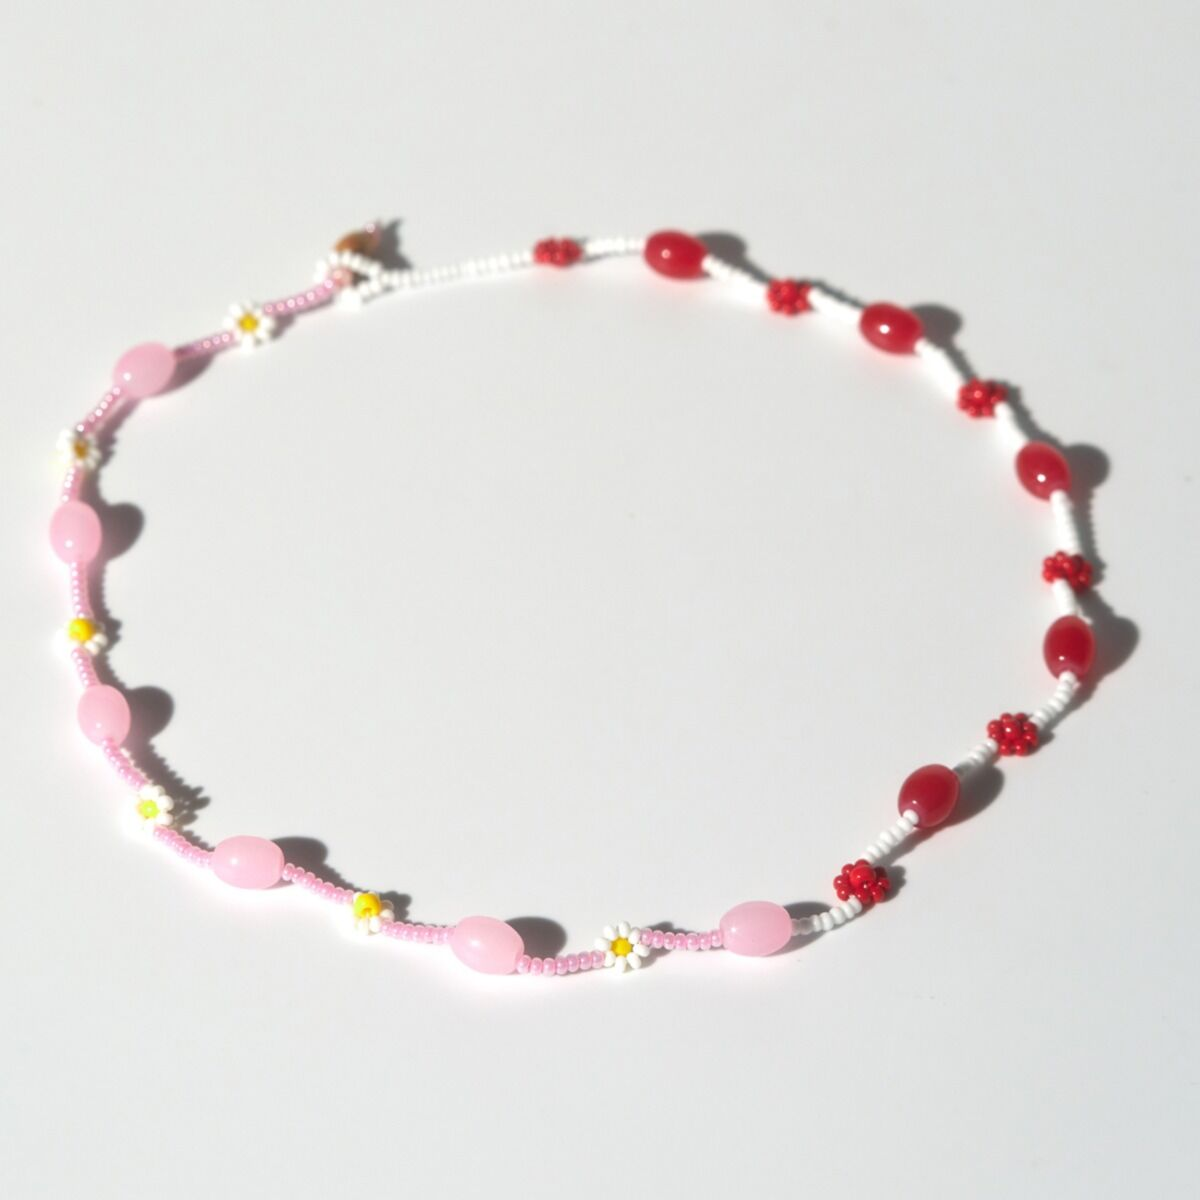 Candy Flower Necklace image